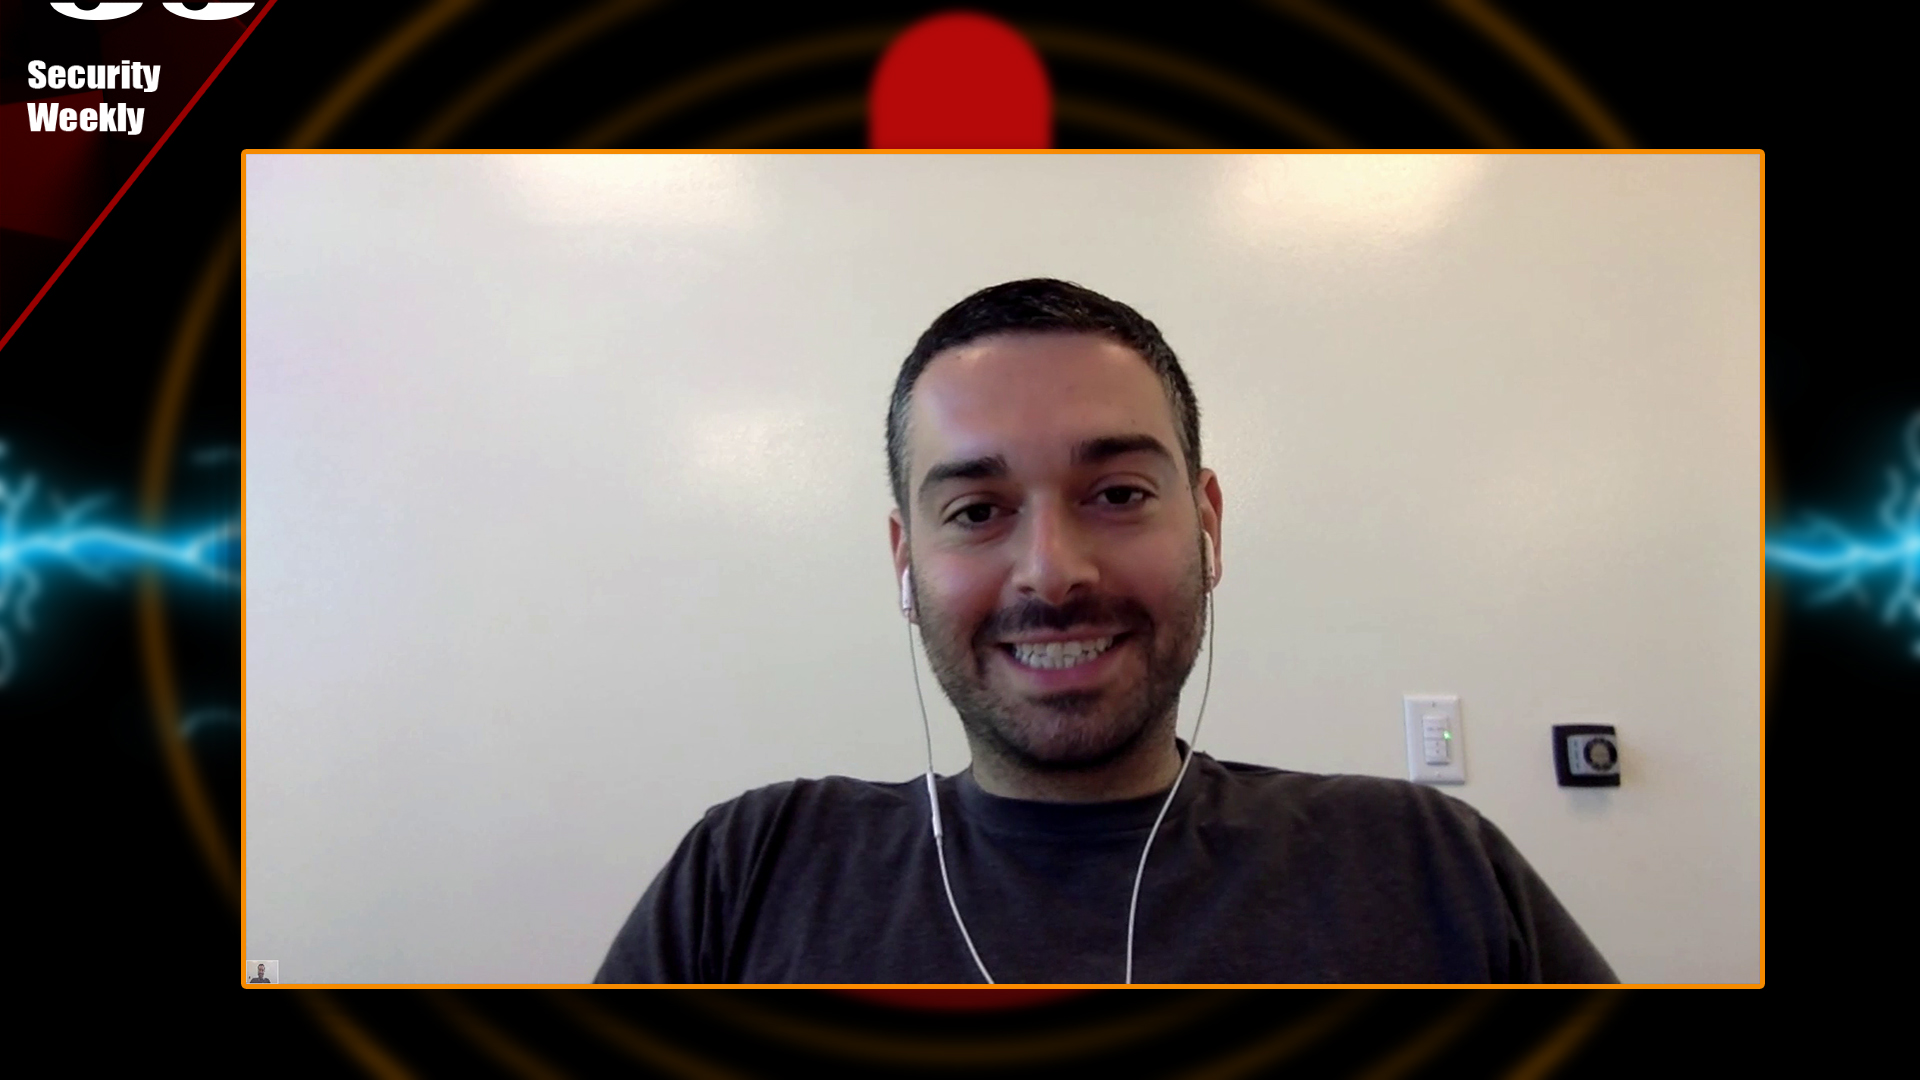 Artwork for Ali Golshan, StackRox - Startup Security Weekly #48